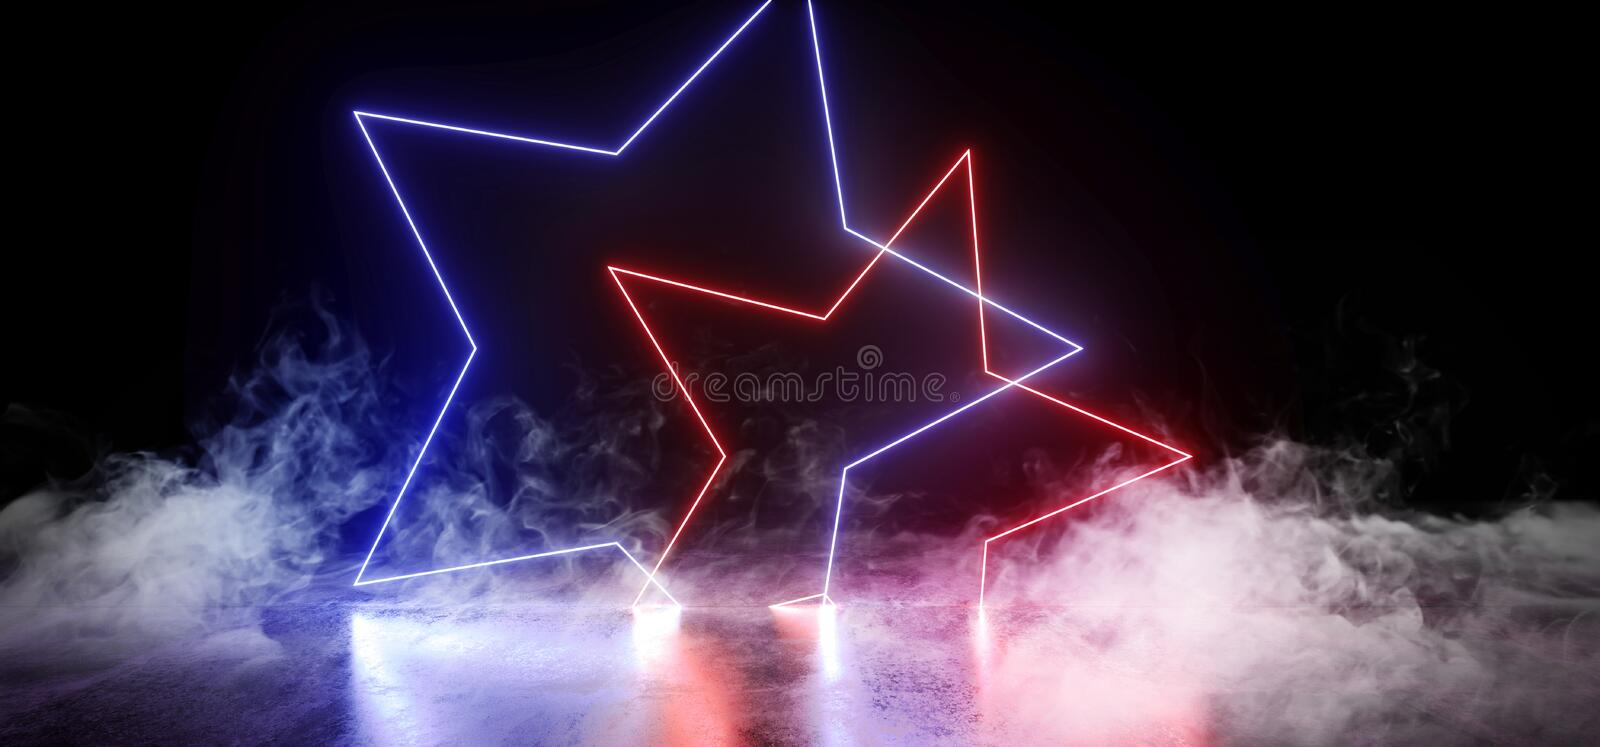 Smoke Dark Empty Black Star Shaped Neon Glowing Laser Fluorescent Virtual Reality Blue Purple Vibrant Lights On Grunge Concrete royalty free illustration